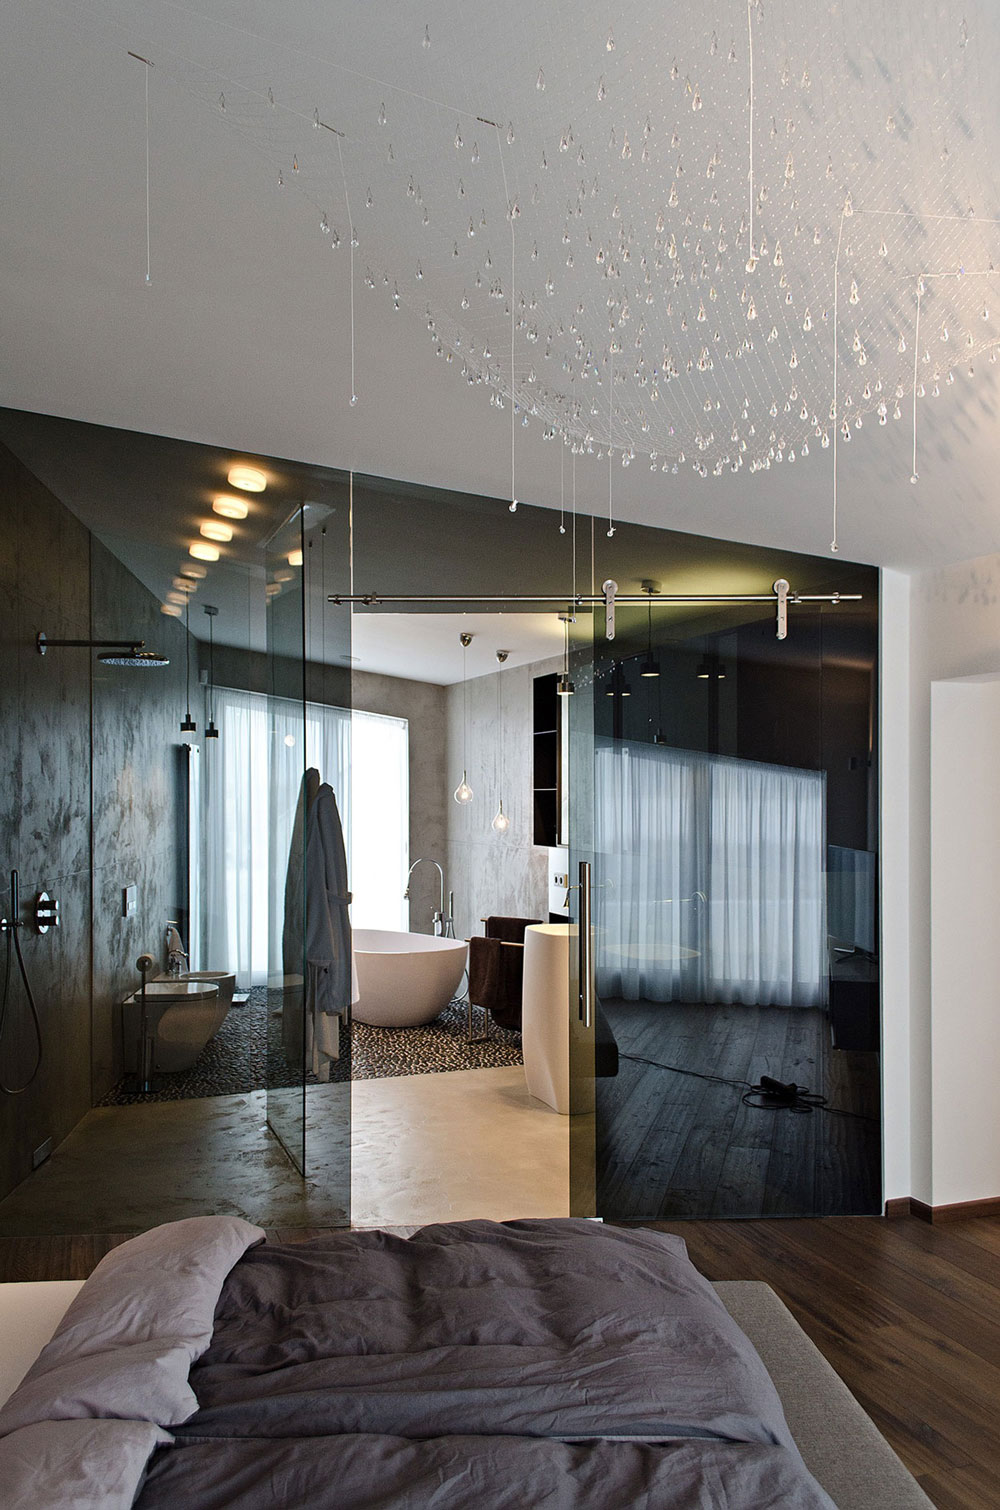 Dark Glass Wall, Bathroom, Bedroom, Concrete Interior Design in Osice, Czech Republic